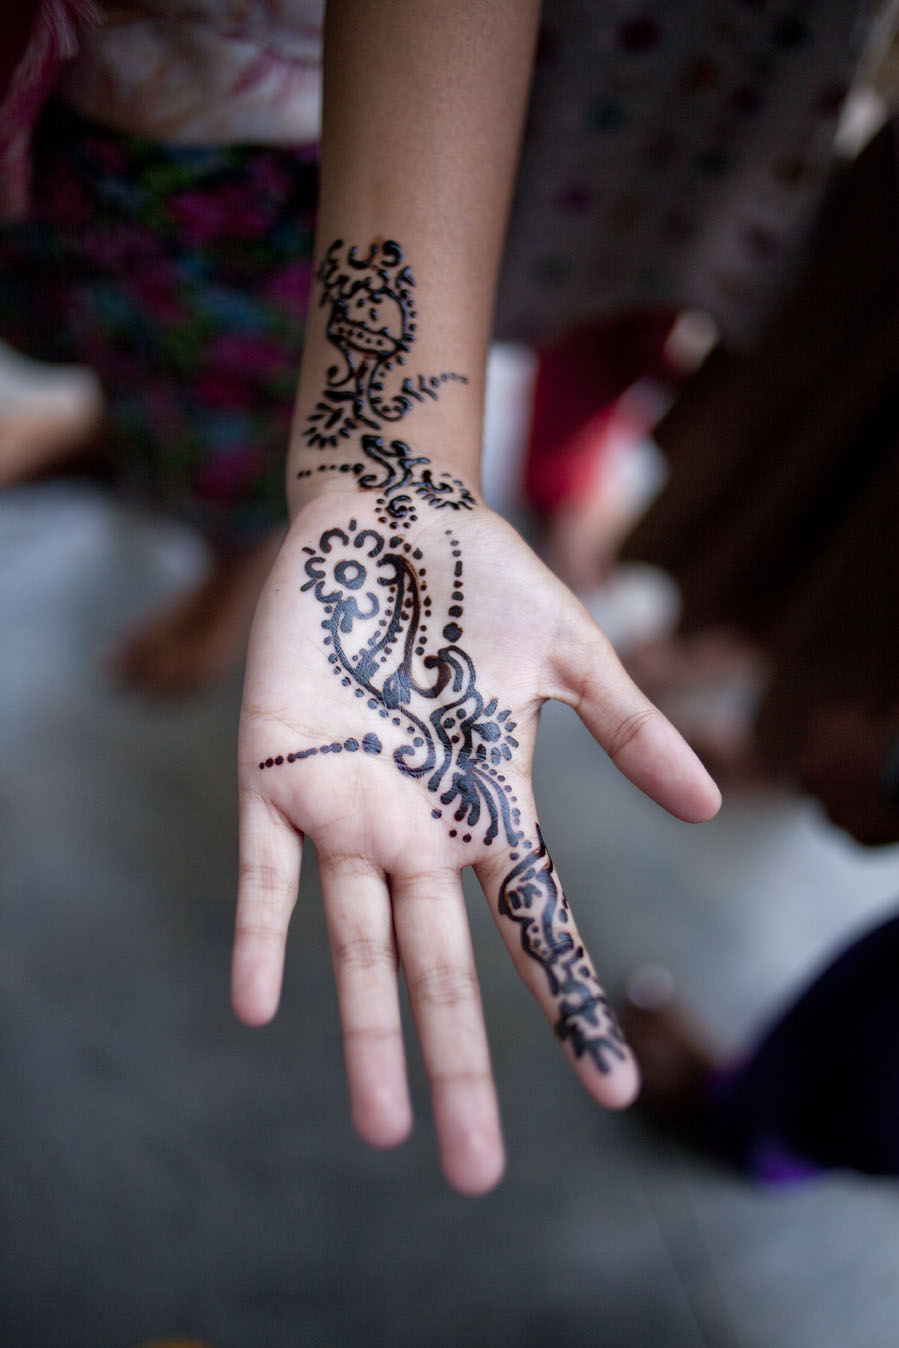 Becca_Ewing_India_teenage girl henna.jpg